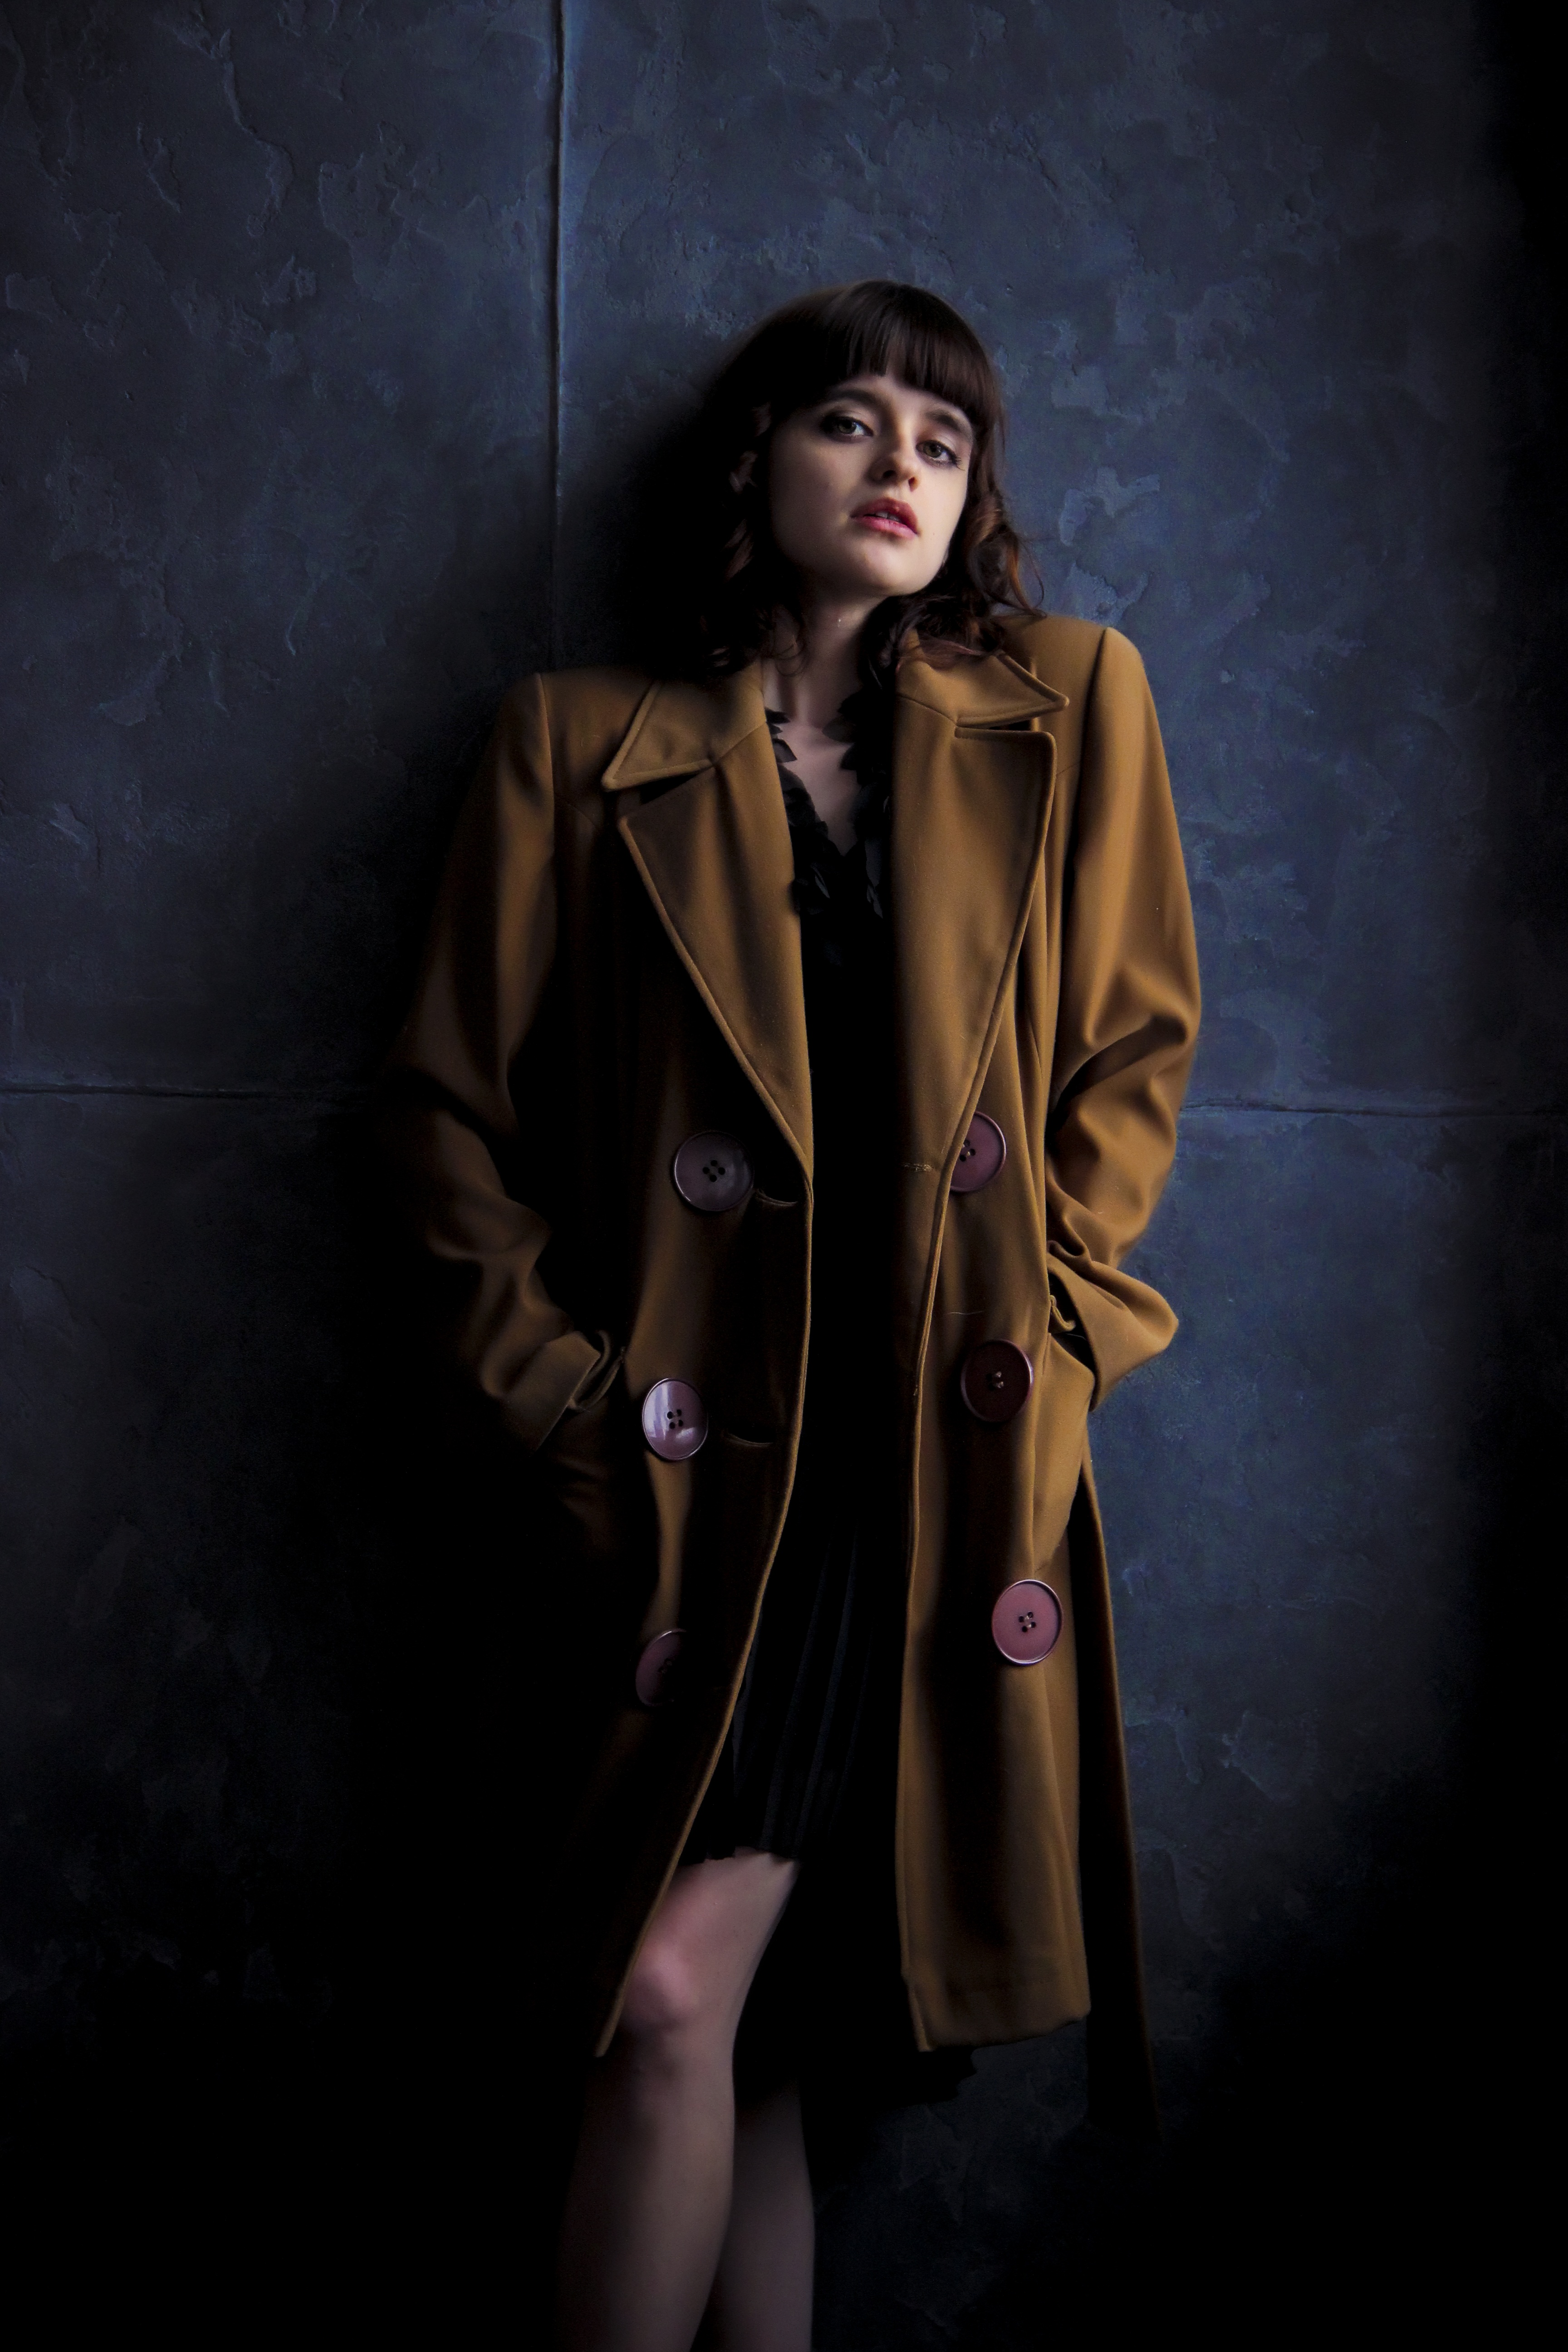 Beautiful Girl Wallpapers Free Woman Wearingbrown Trench Coat 183 Free Stock Photo